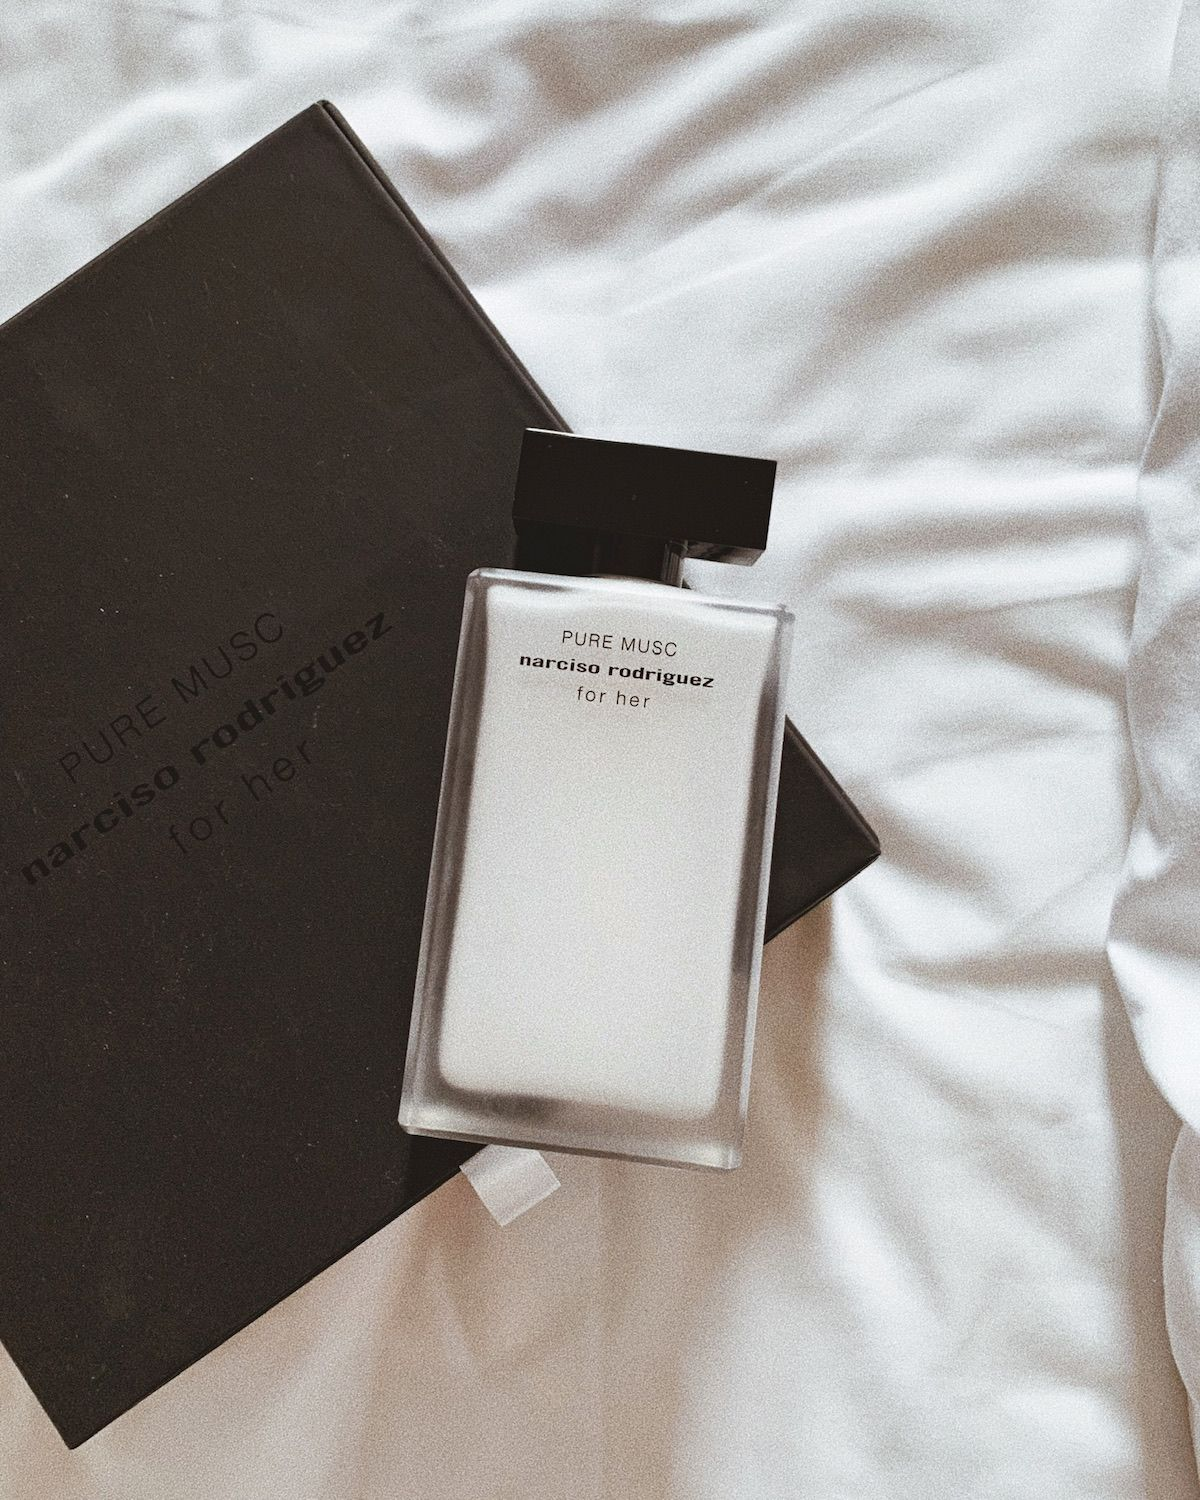 30++ Narciso rodriguez musc for her ideas in 2021